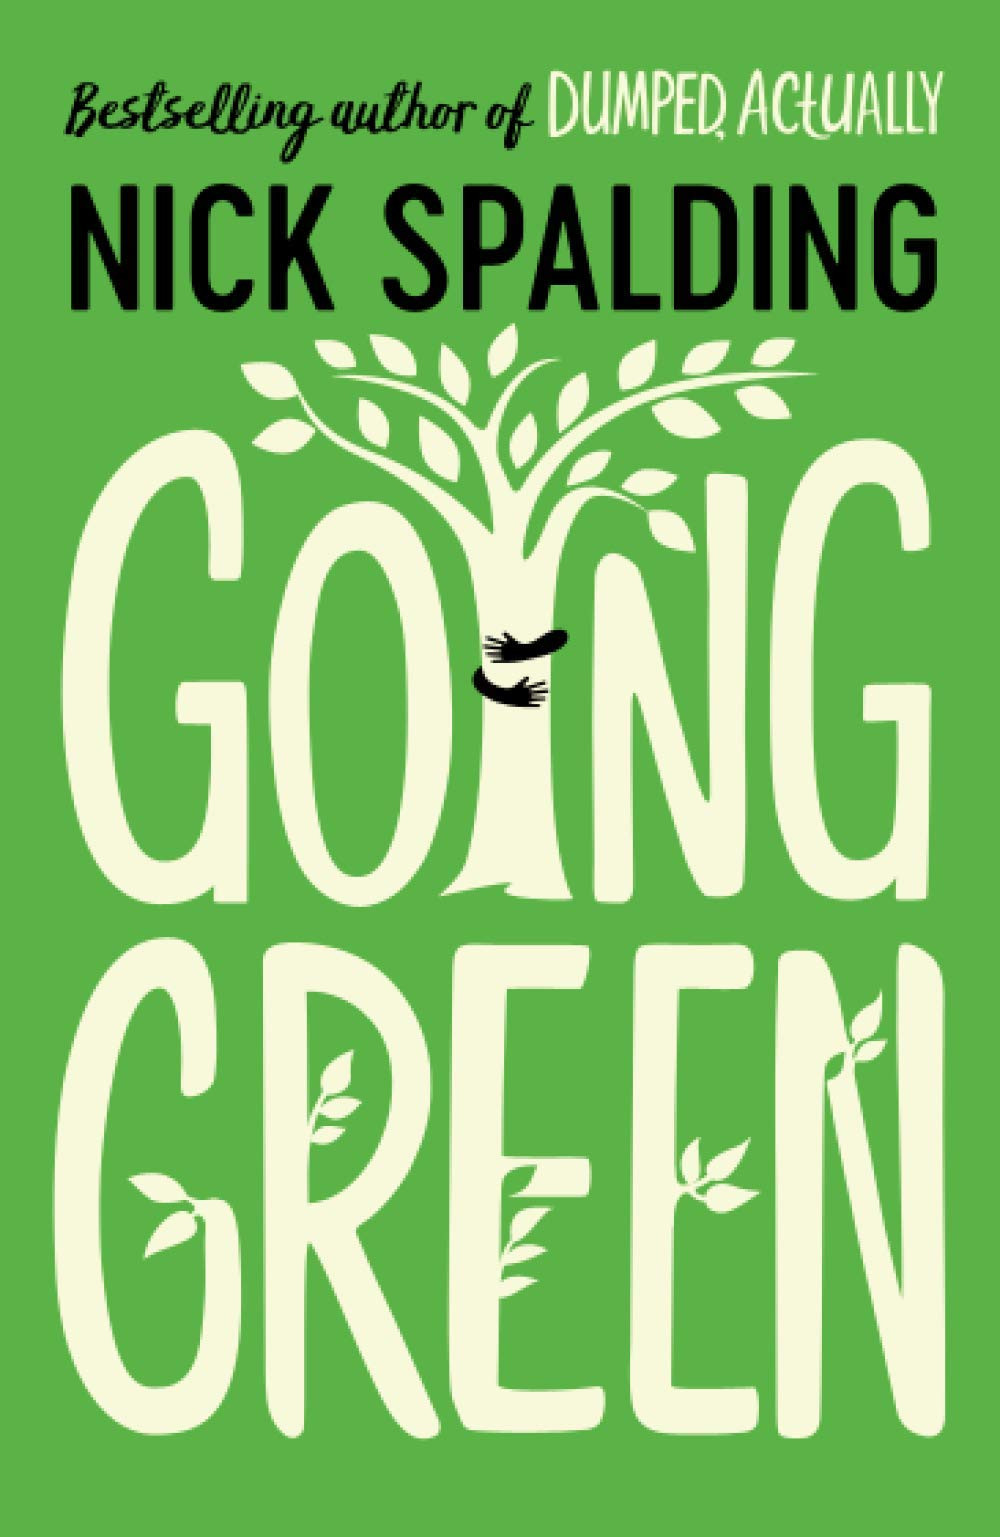 Going green by Nick Spalding